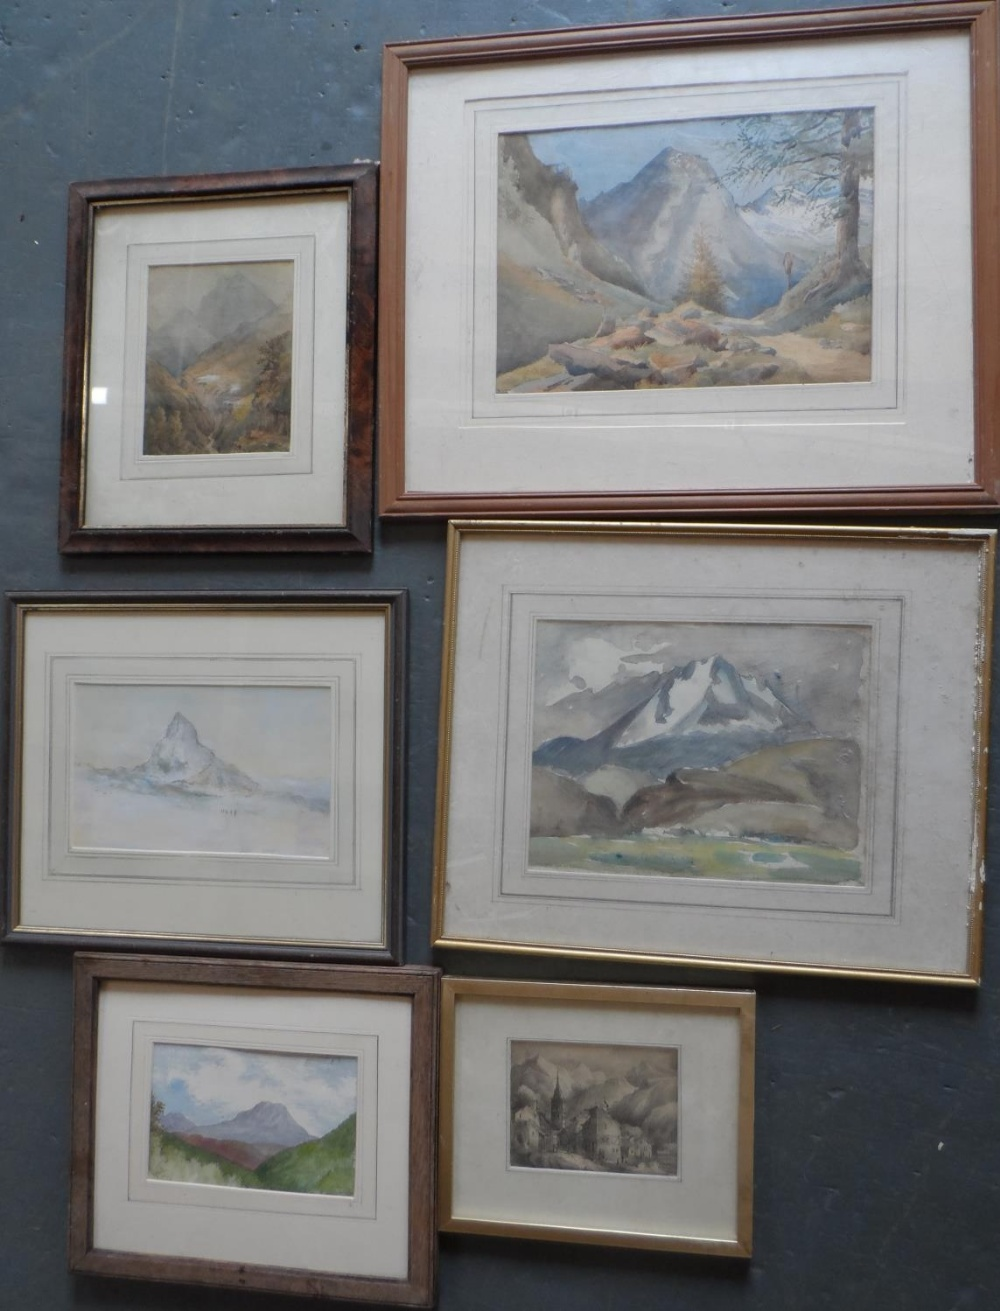 Six Alpine scene watercolours and drawing, all by differing artists, all framed (6)